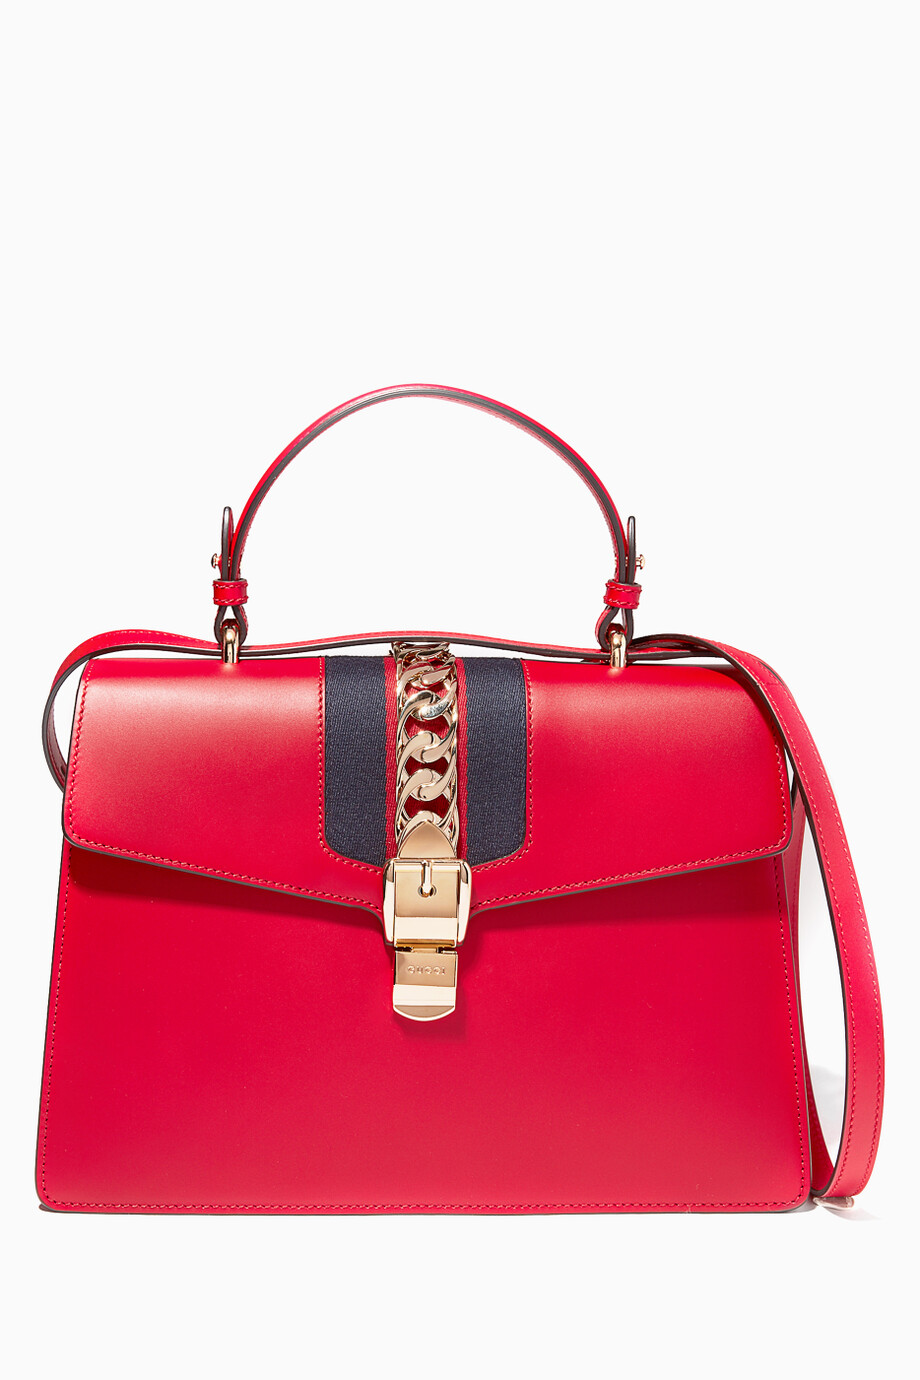 891e9e28a17b Shop Gucci Red Hibiscus Sylvie Medium Leather Tote Bag for Women ...